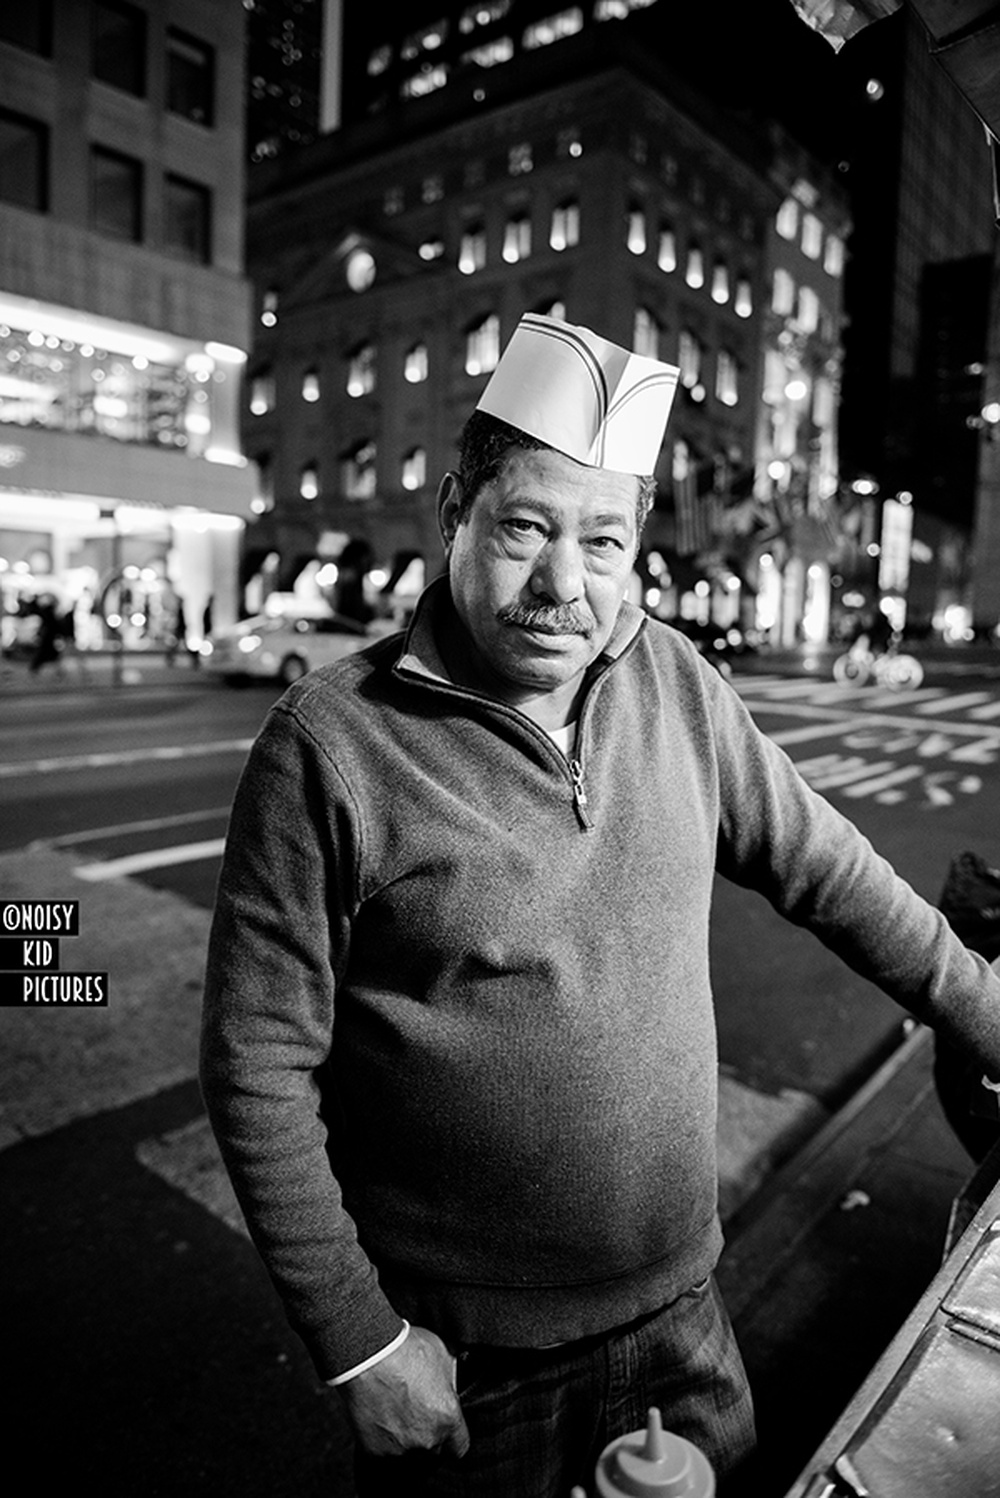 new york american portrait de Noisy Kid.